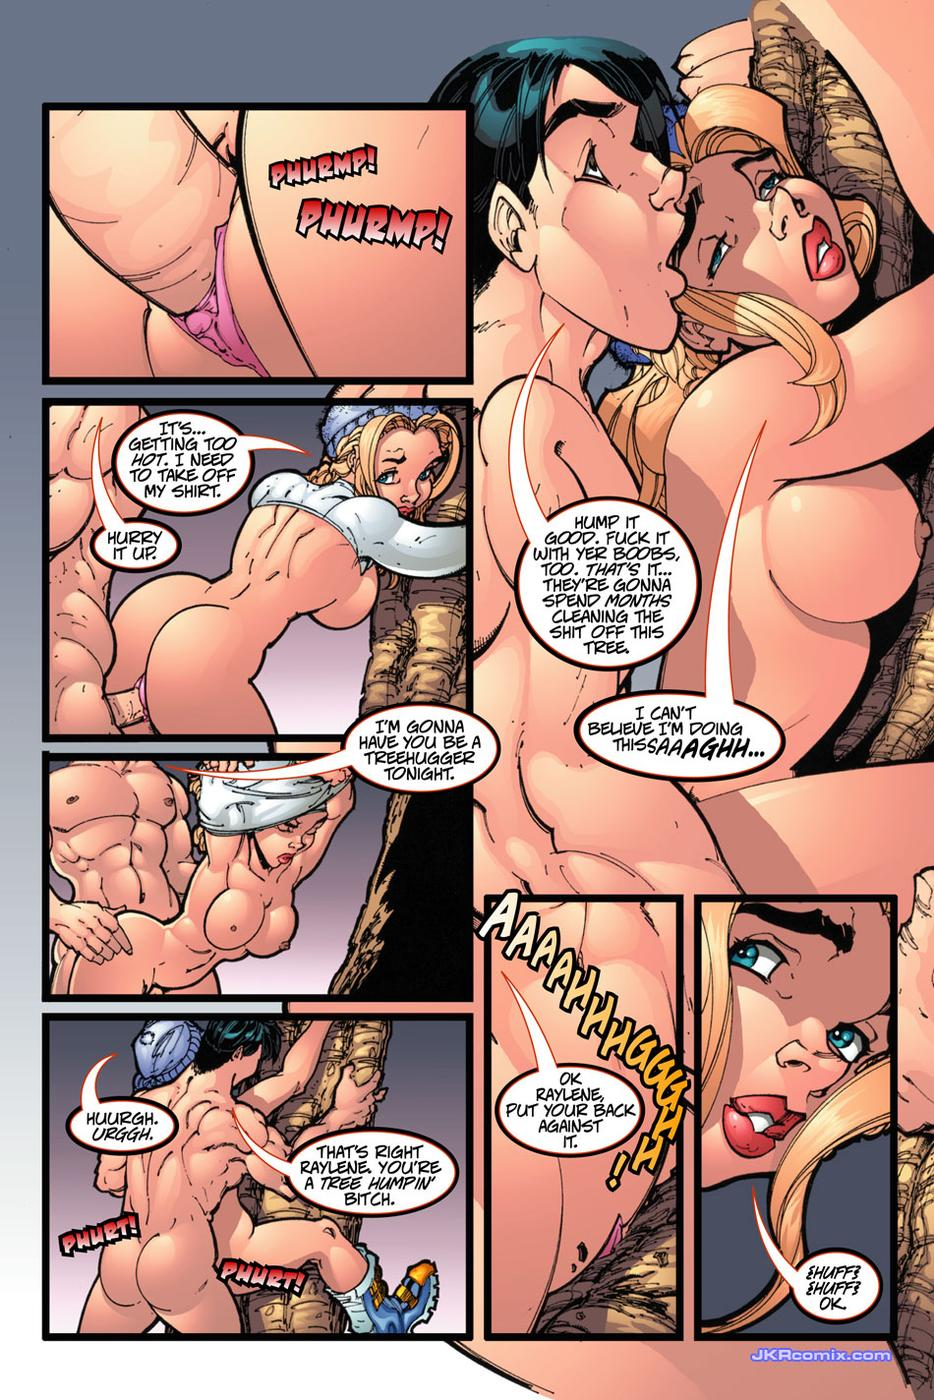 Adult cartoon comic erotic